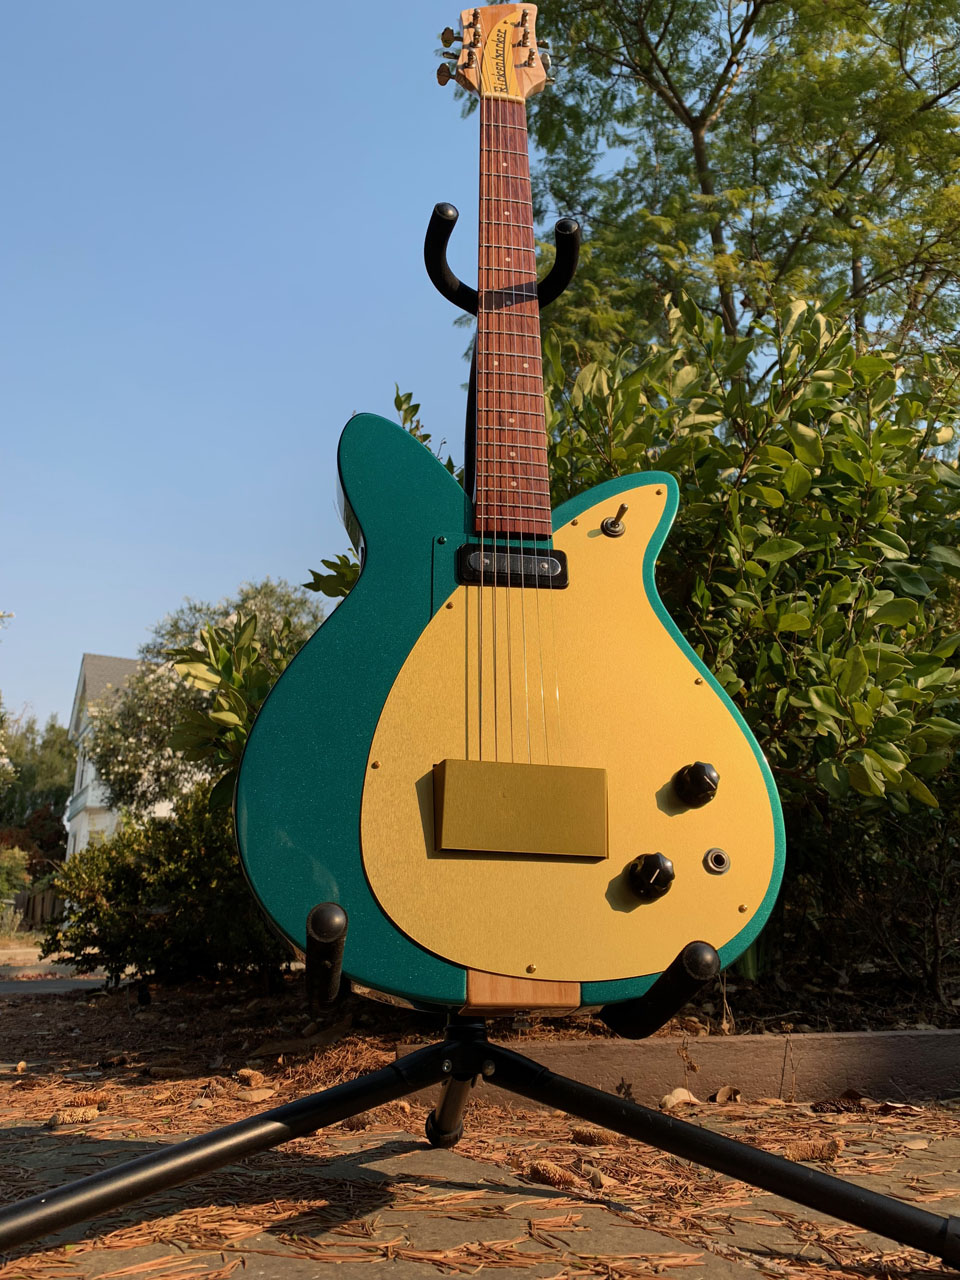 SECOND ITERATION, WITH MATCHING GREEN PICKUP SURROUND AREA